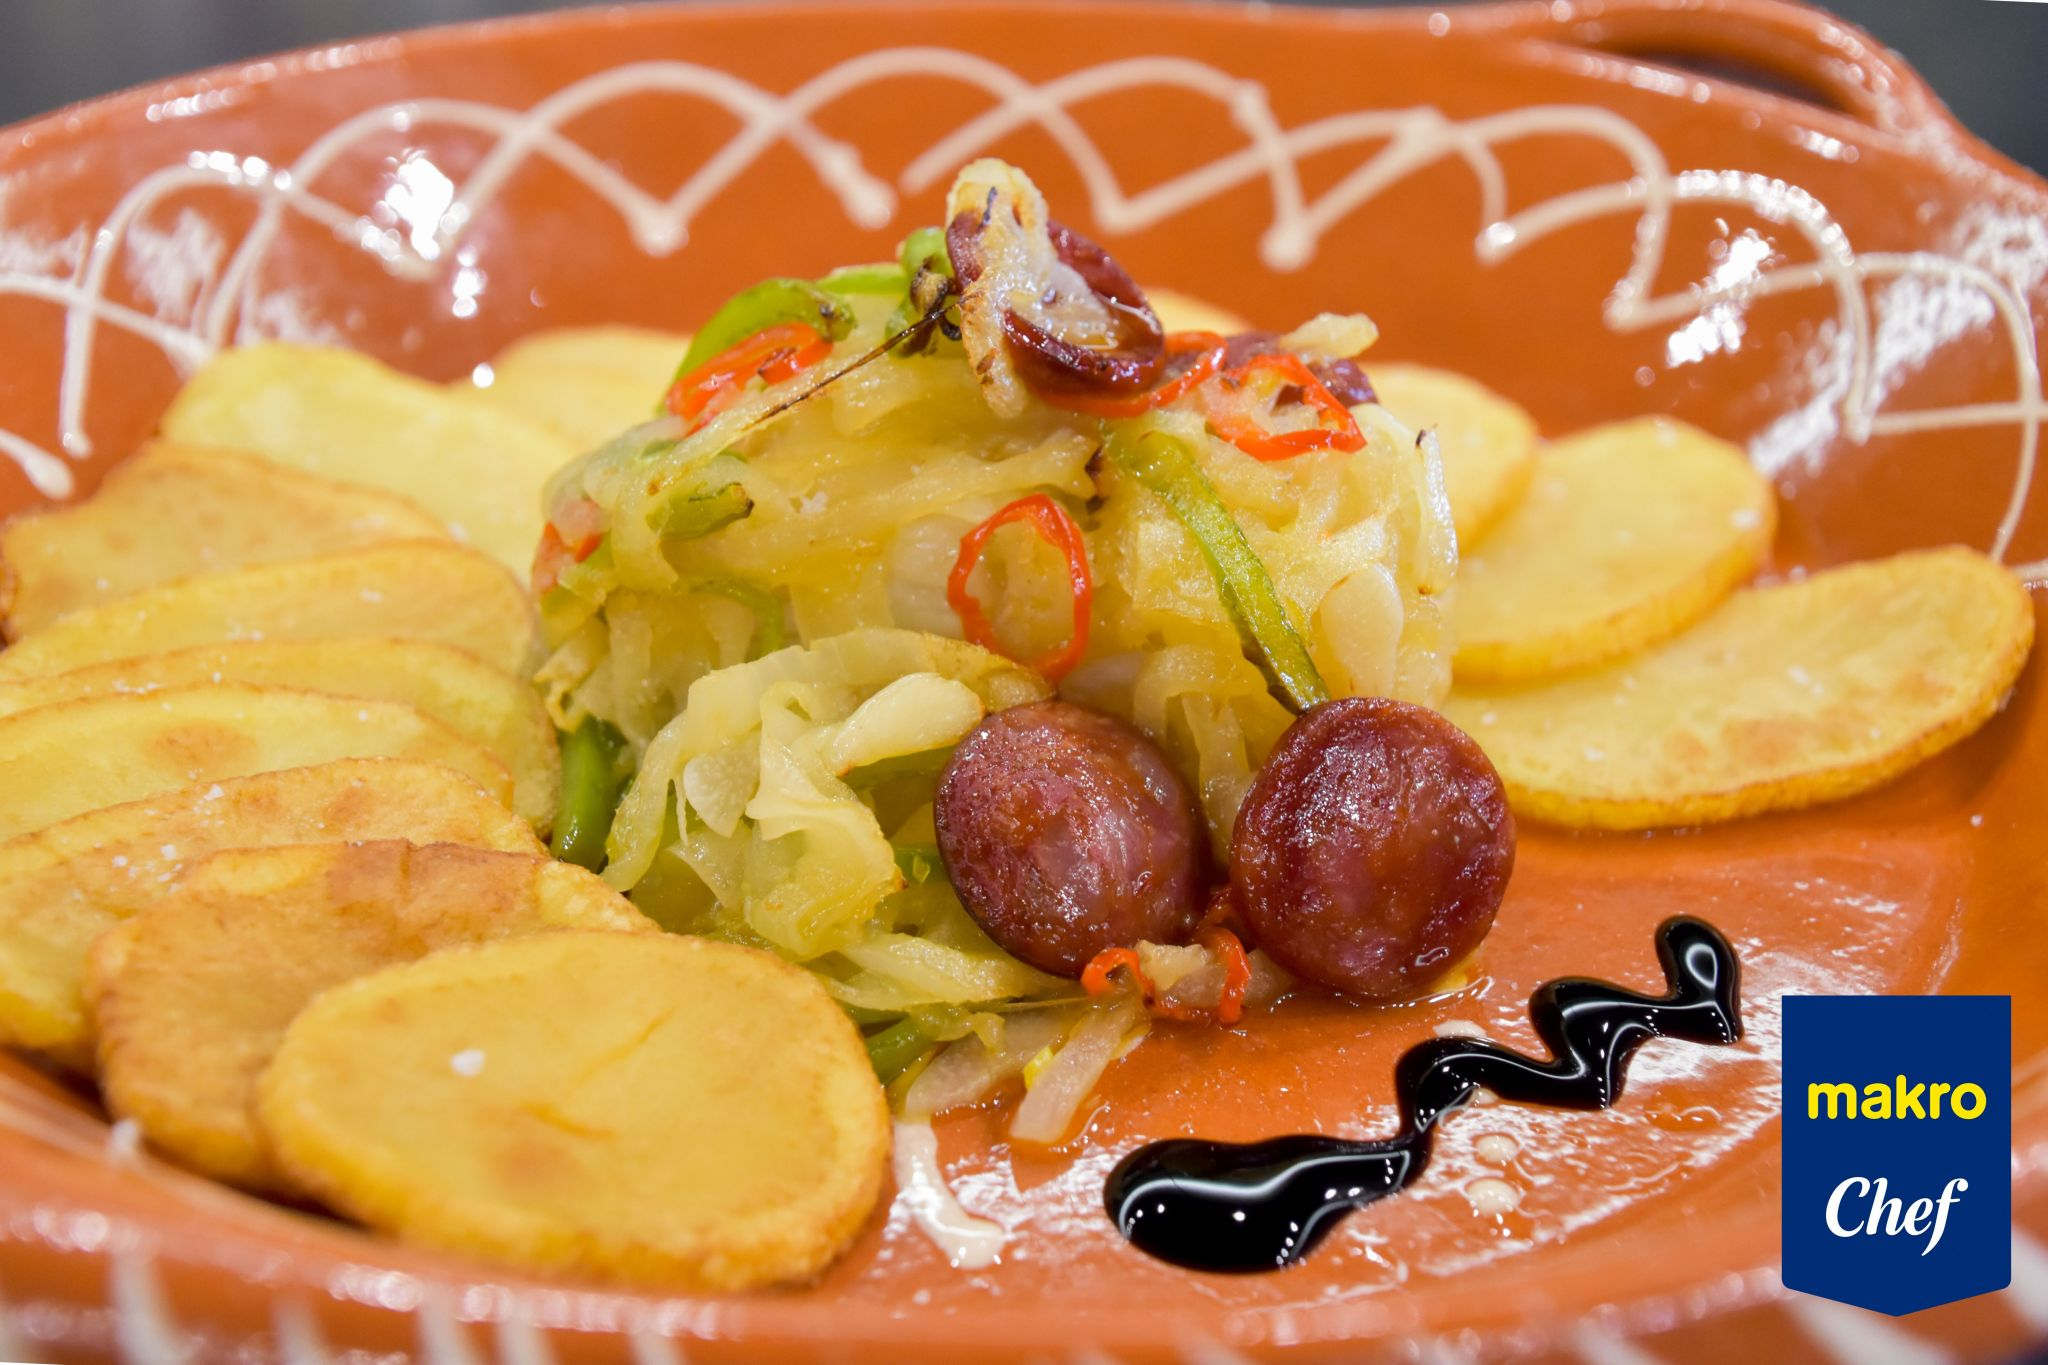 Desafio Bacalhau Makro Chef 2º Classificado